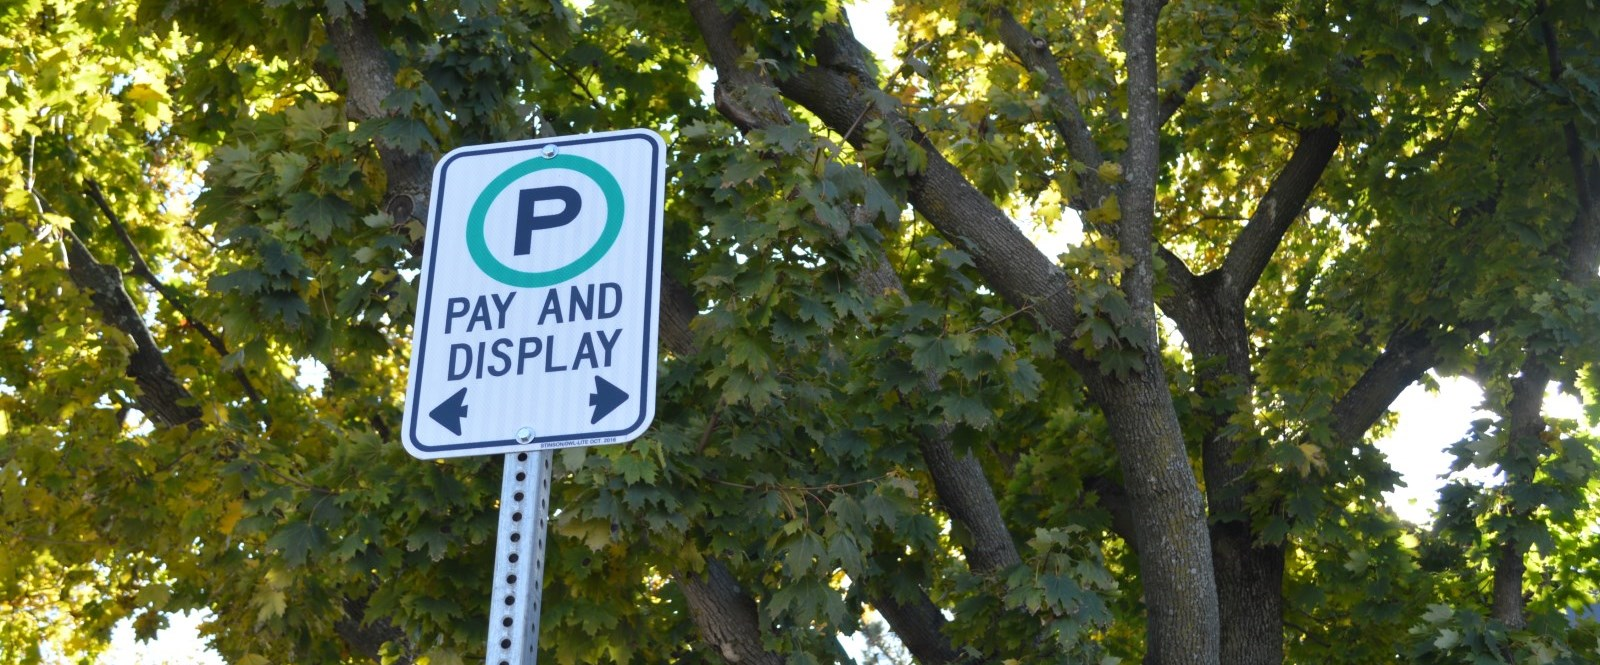 Pay and display sign in front of City Hall and a green tree